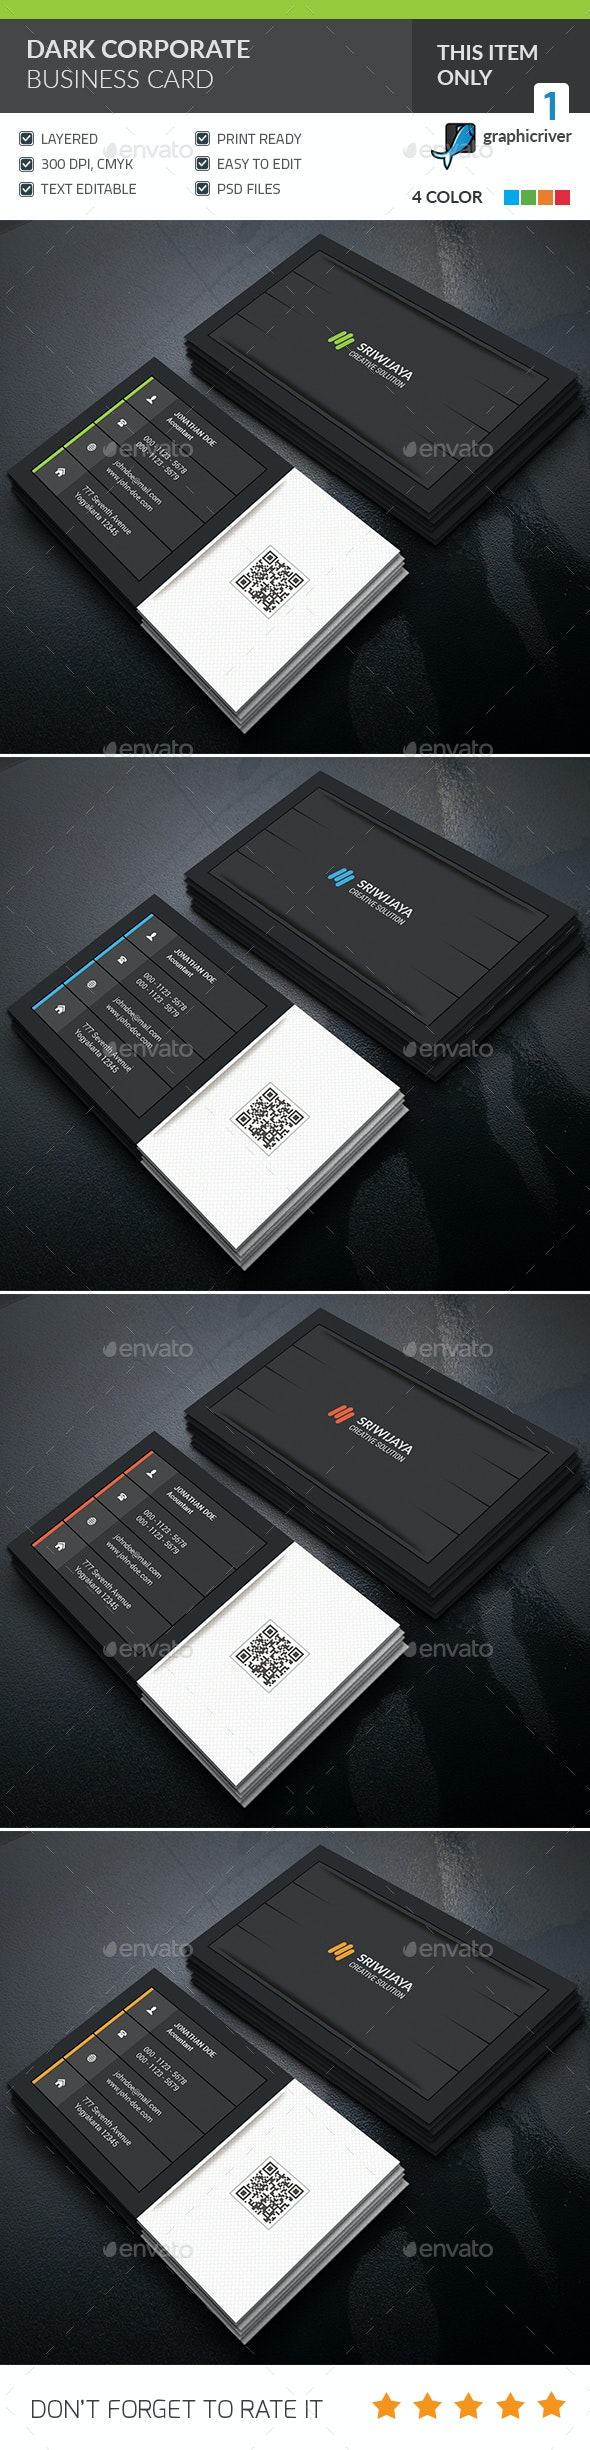 Dark Corporate Business Card - Corporate Business Cards